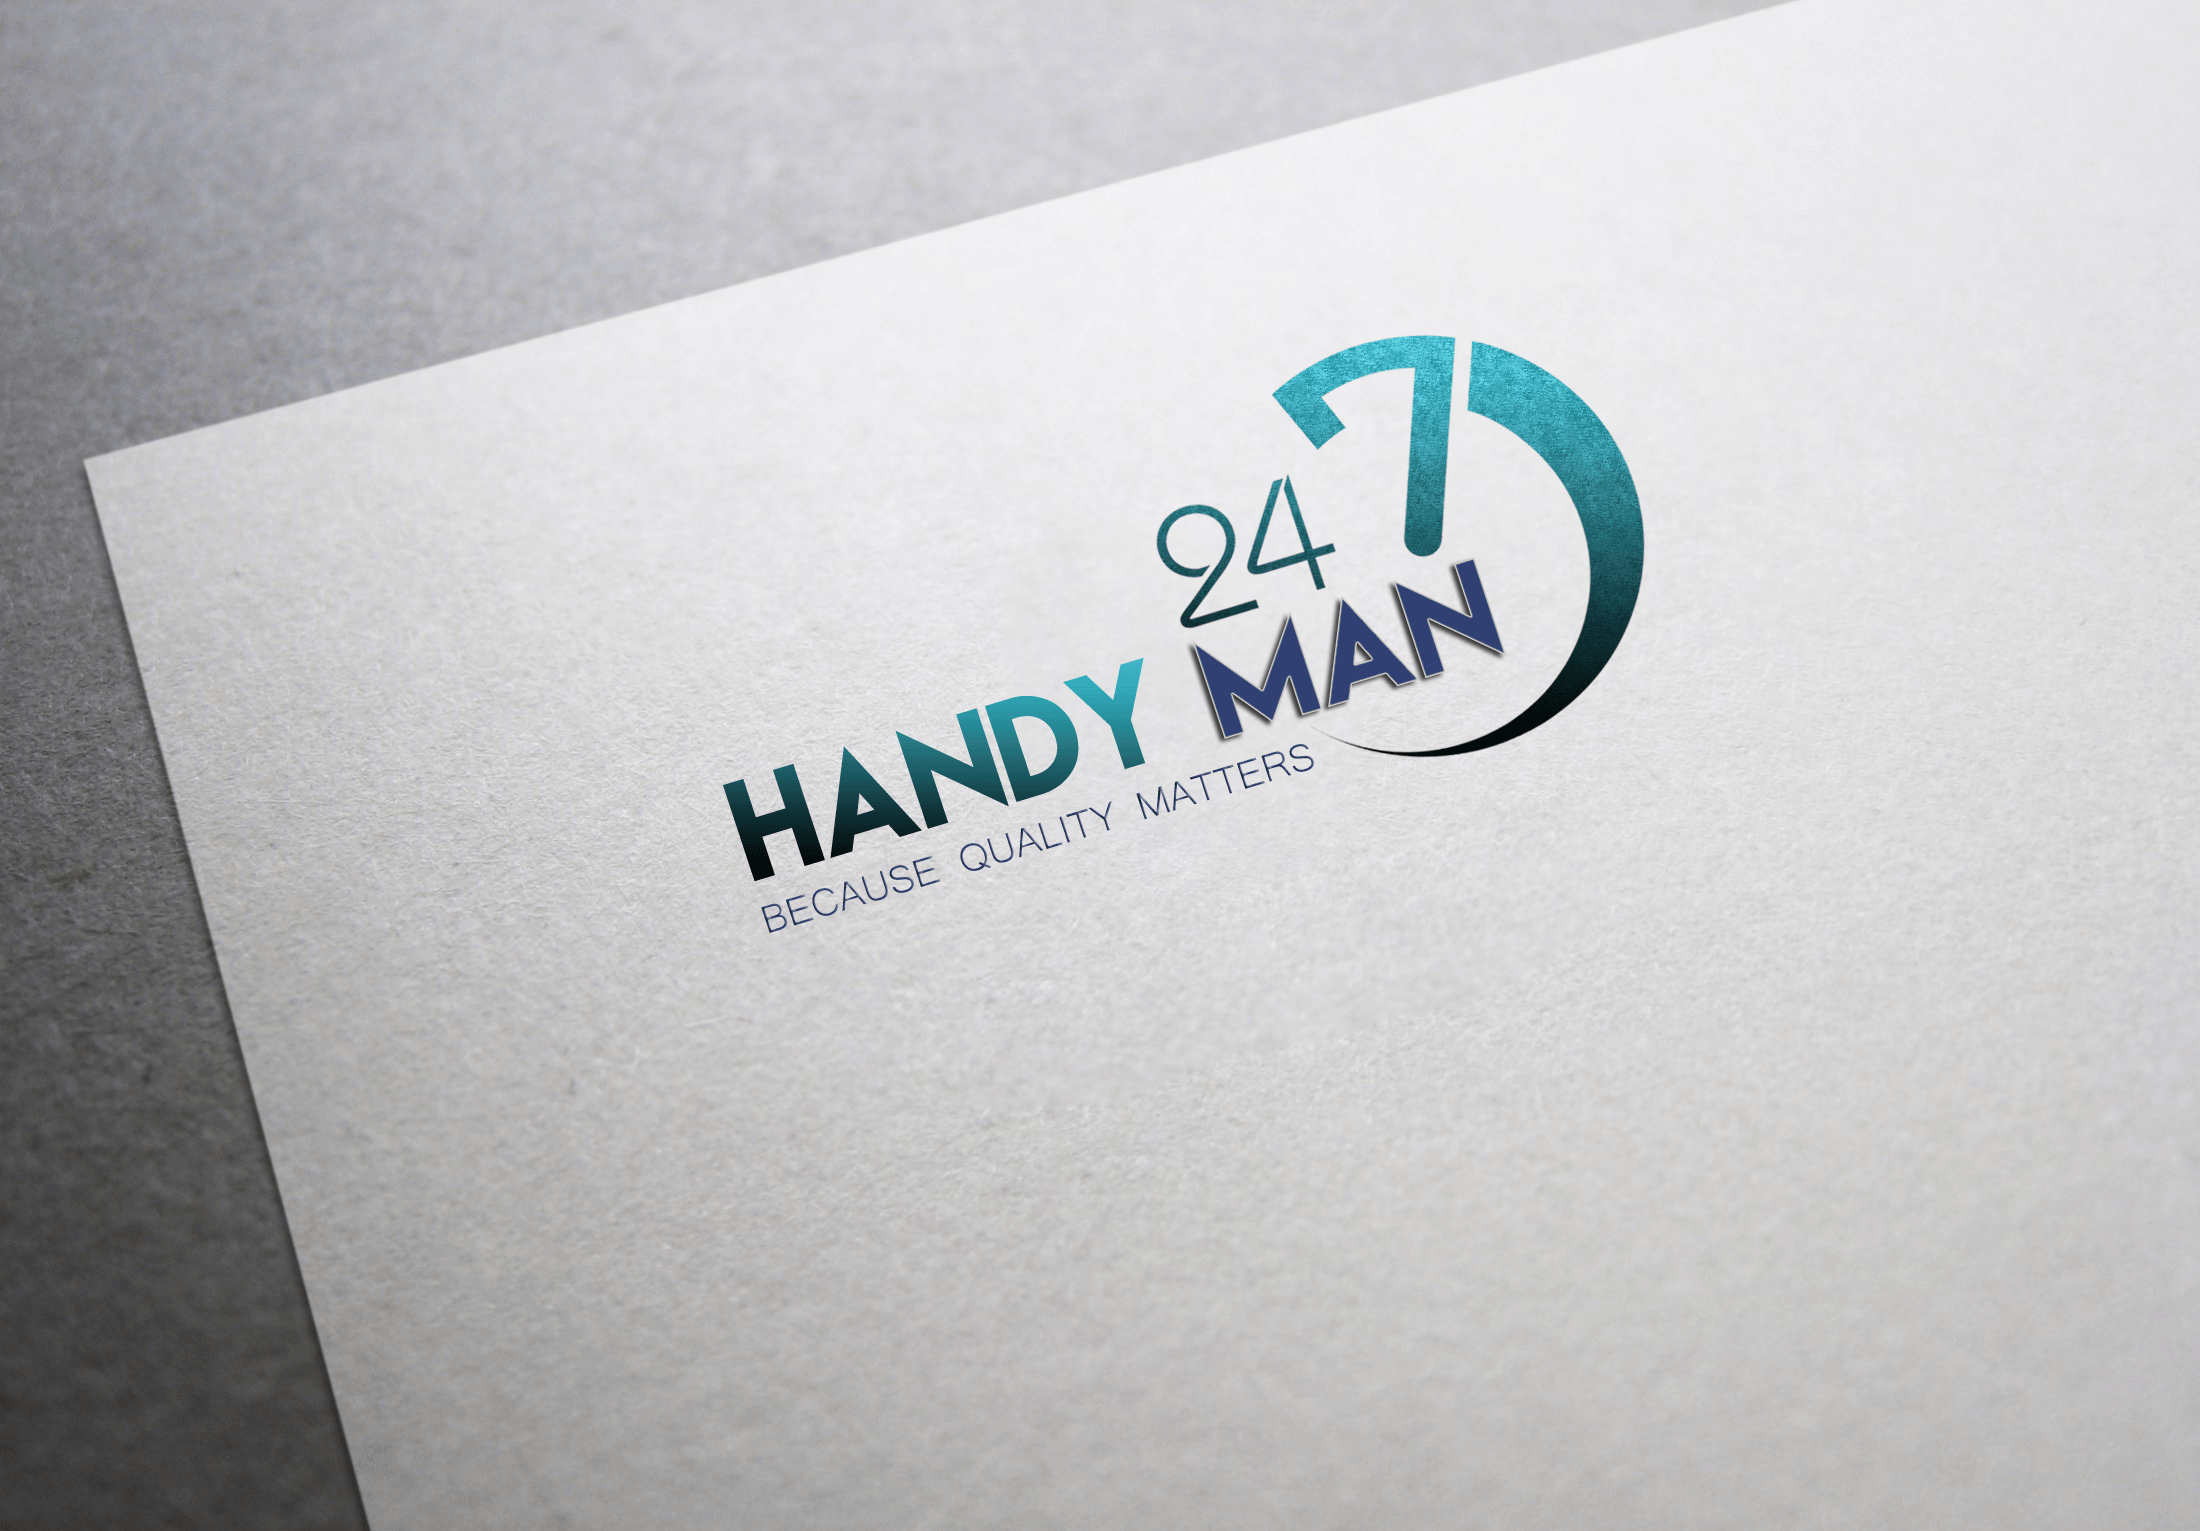 logo-design-handy man